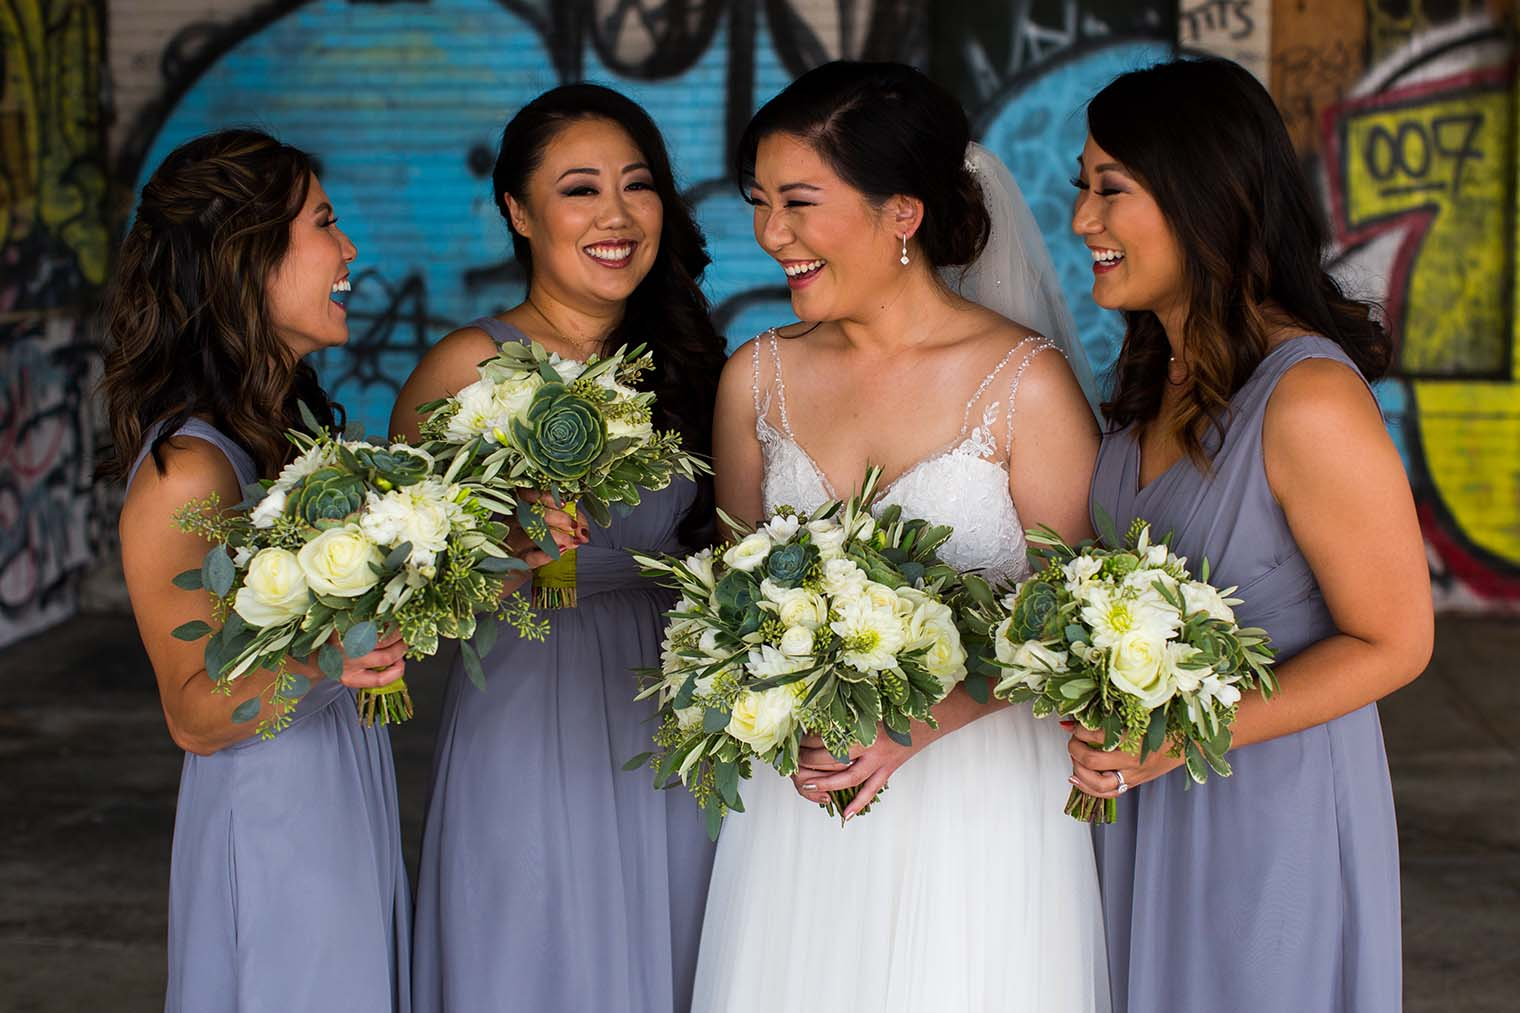 16th Street Station Wedding Bridesmaids